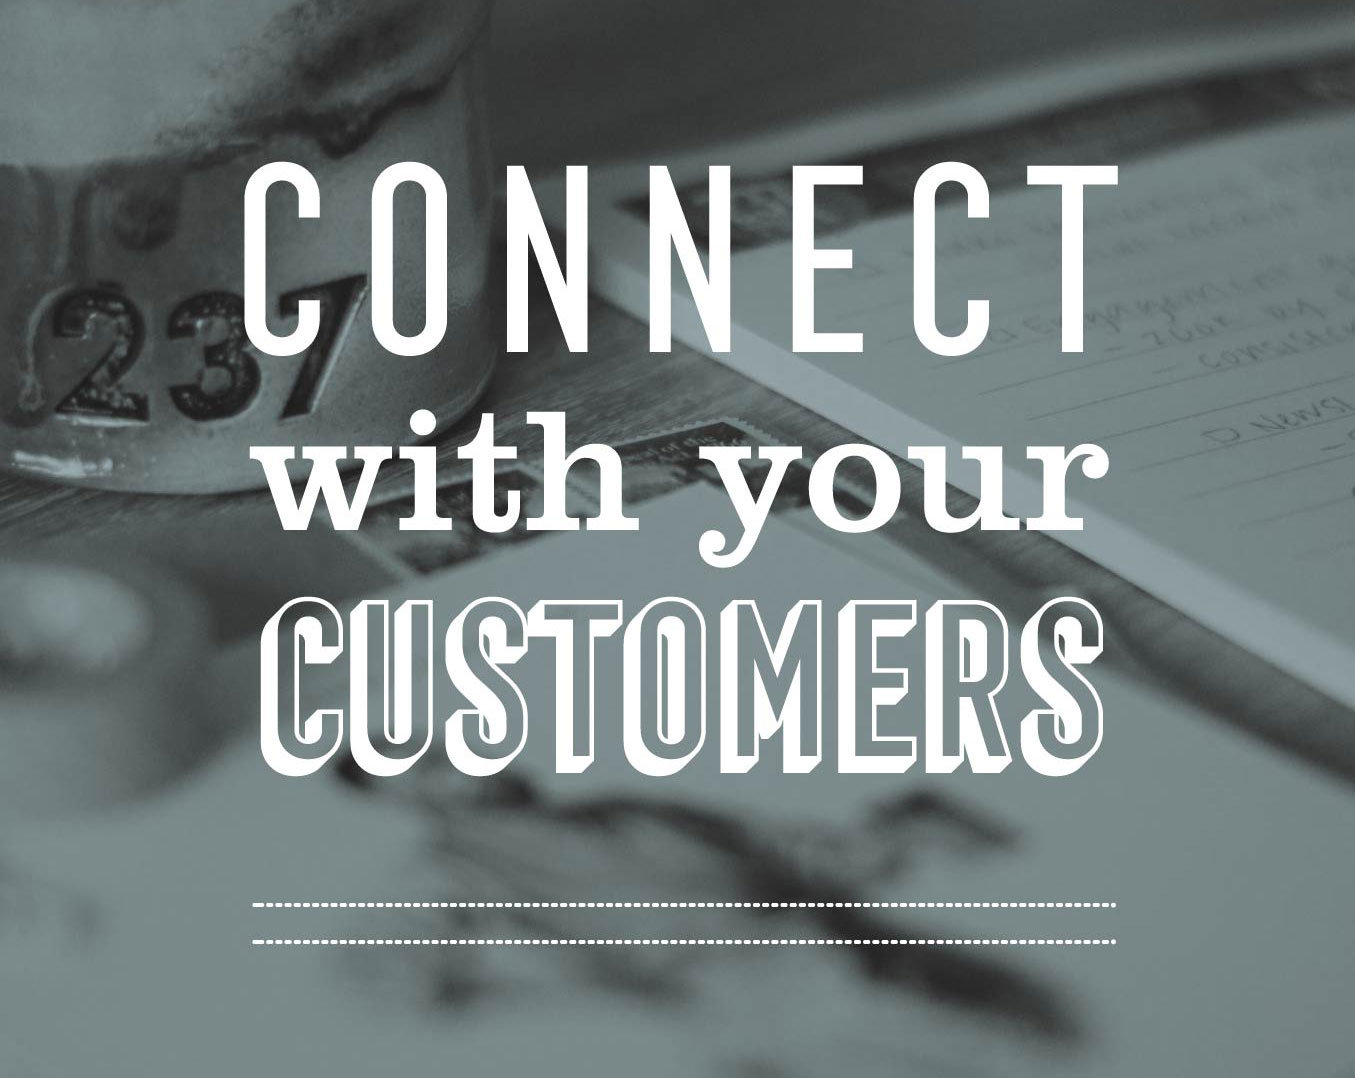 237 Marketing + Web wants to help you Connect with Your Customers